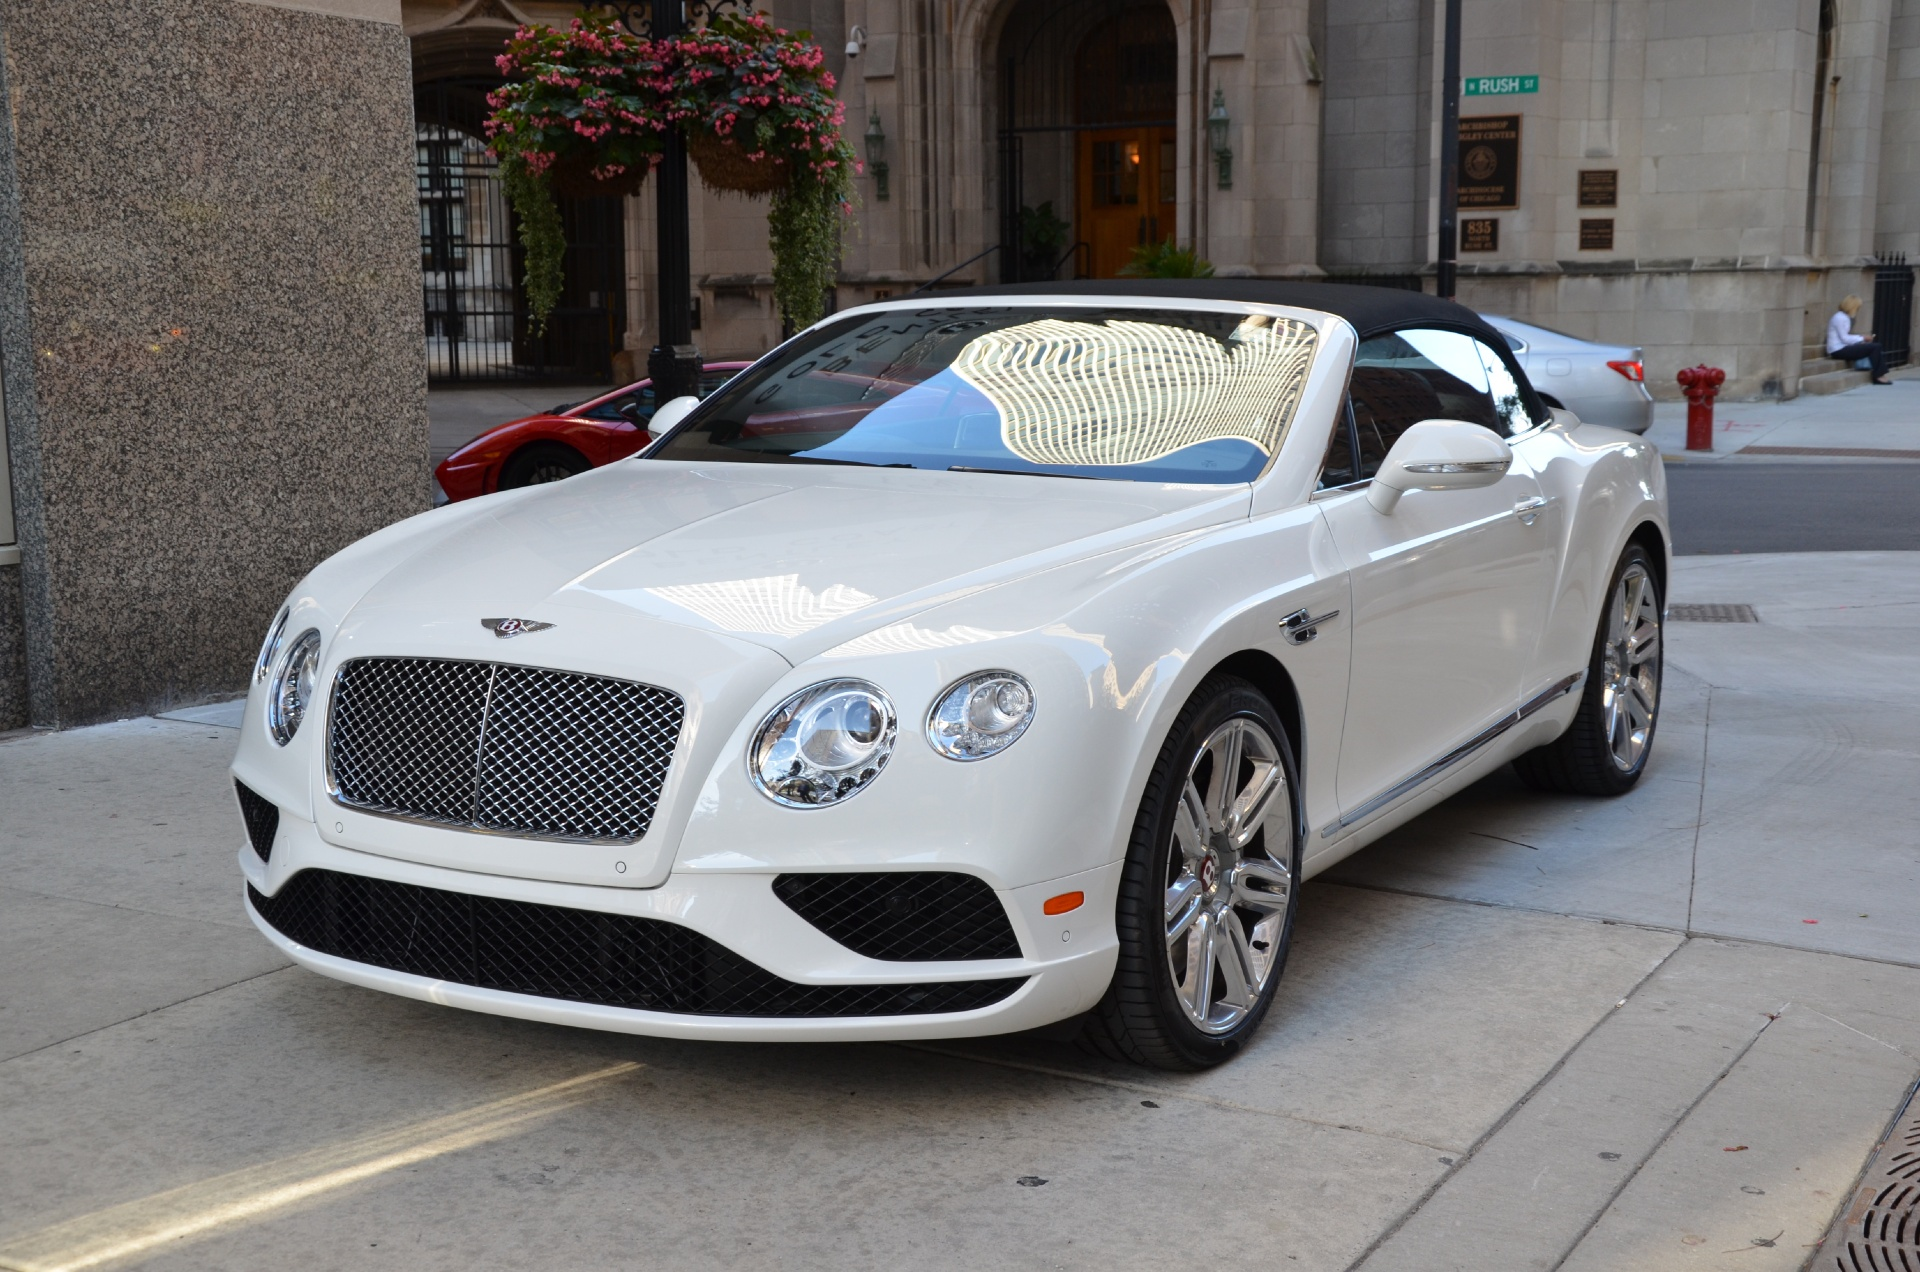 2016 Bentley Continental Gtc V8 Stock B739 S For Sale